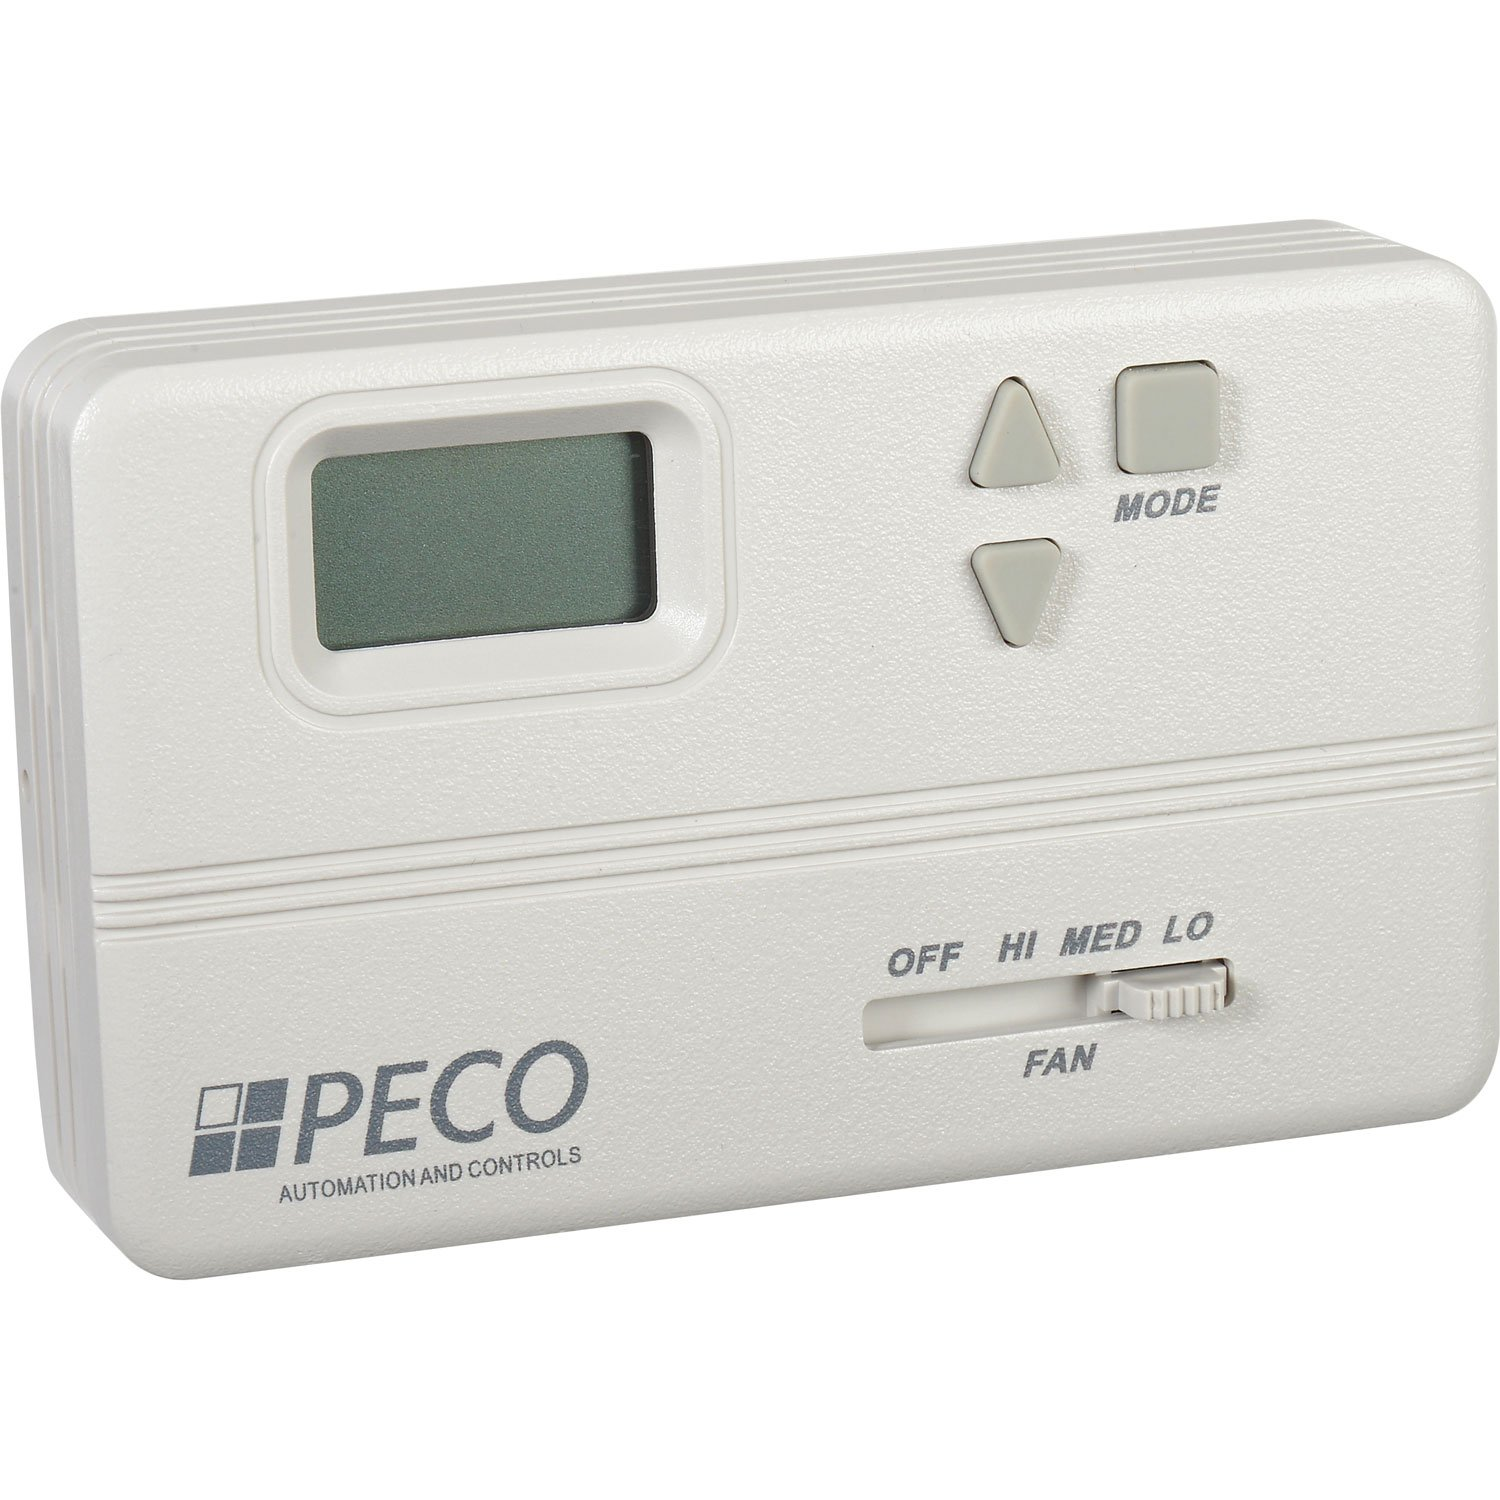 Modulating Fan Coil Thermostat W/ Auto-Heat-Cool-Off Switch, Off-Hi-Med-Lo Fan Control, 3-Wire, Lot of 1 by PECO